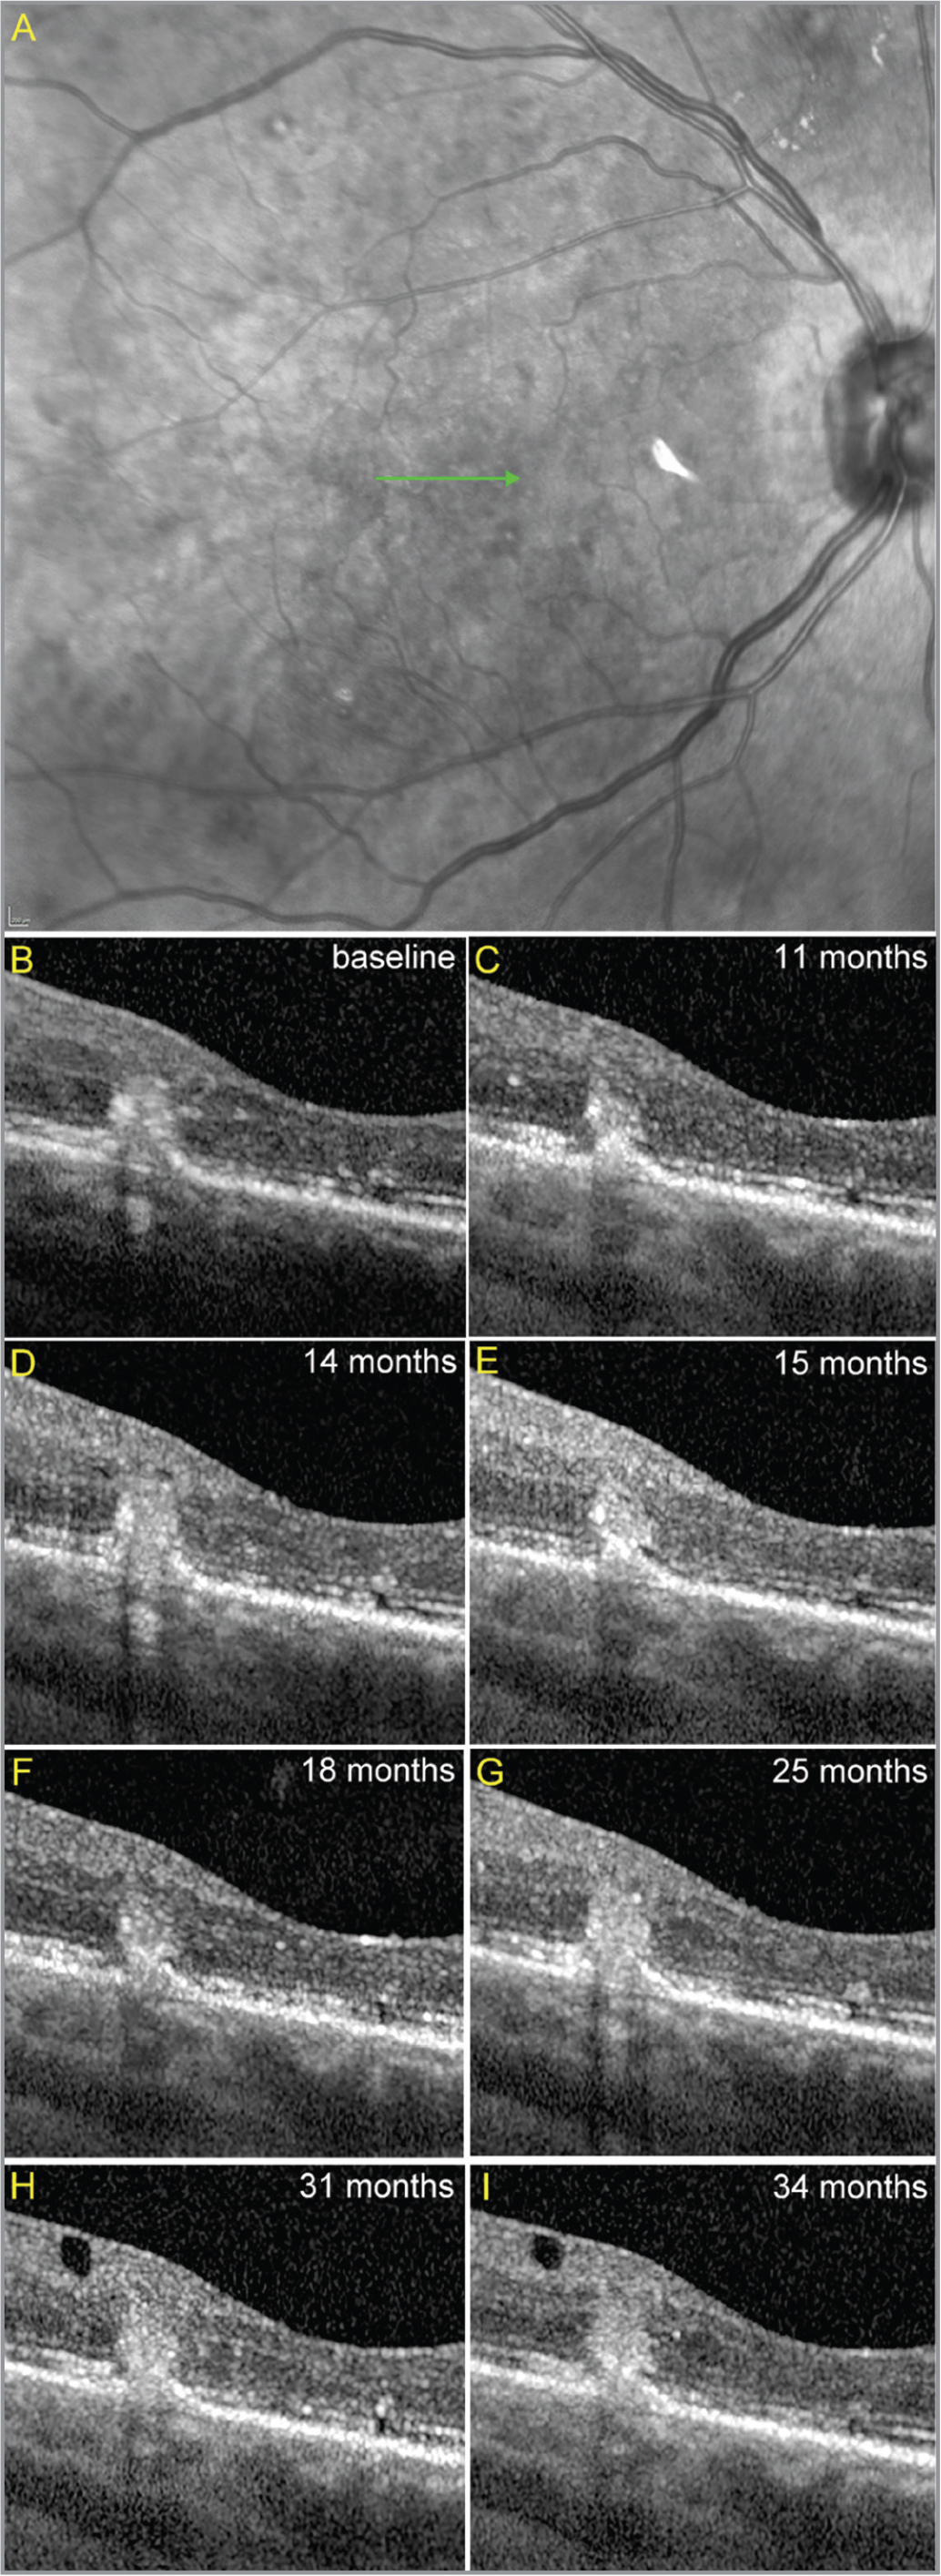 Follow-up images show the nonprogressive nature of the vascular complex. (B to K) Eye-tracked spectral-domain optical coherence tomography images at different time points taken through the green line in the near-infrared reflectance image (A).